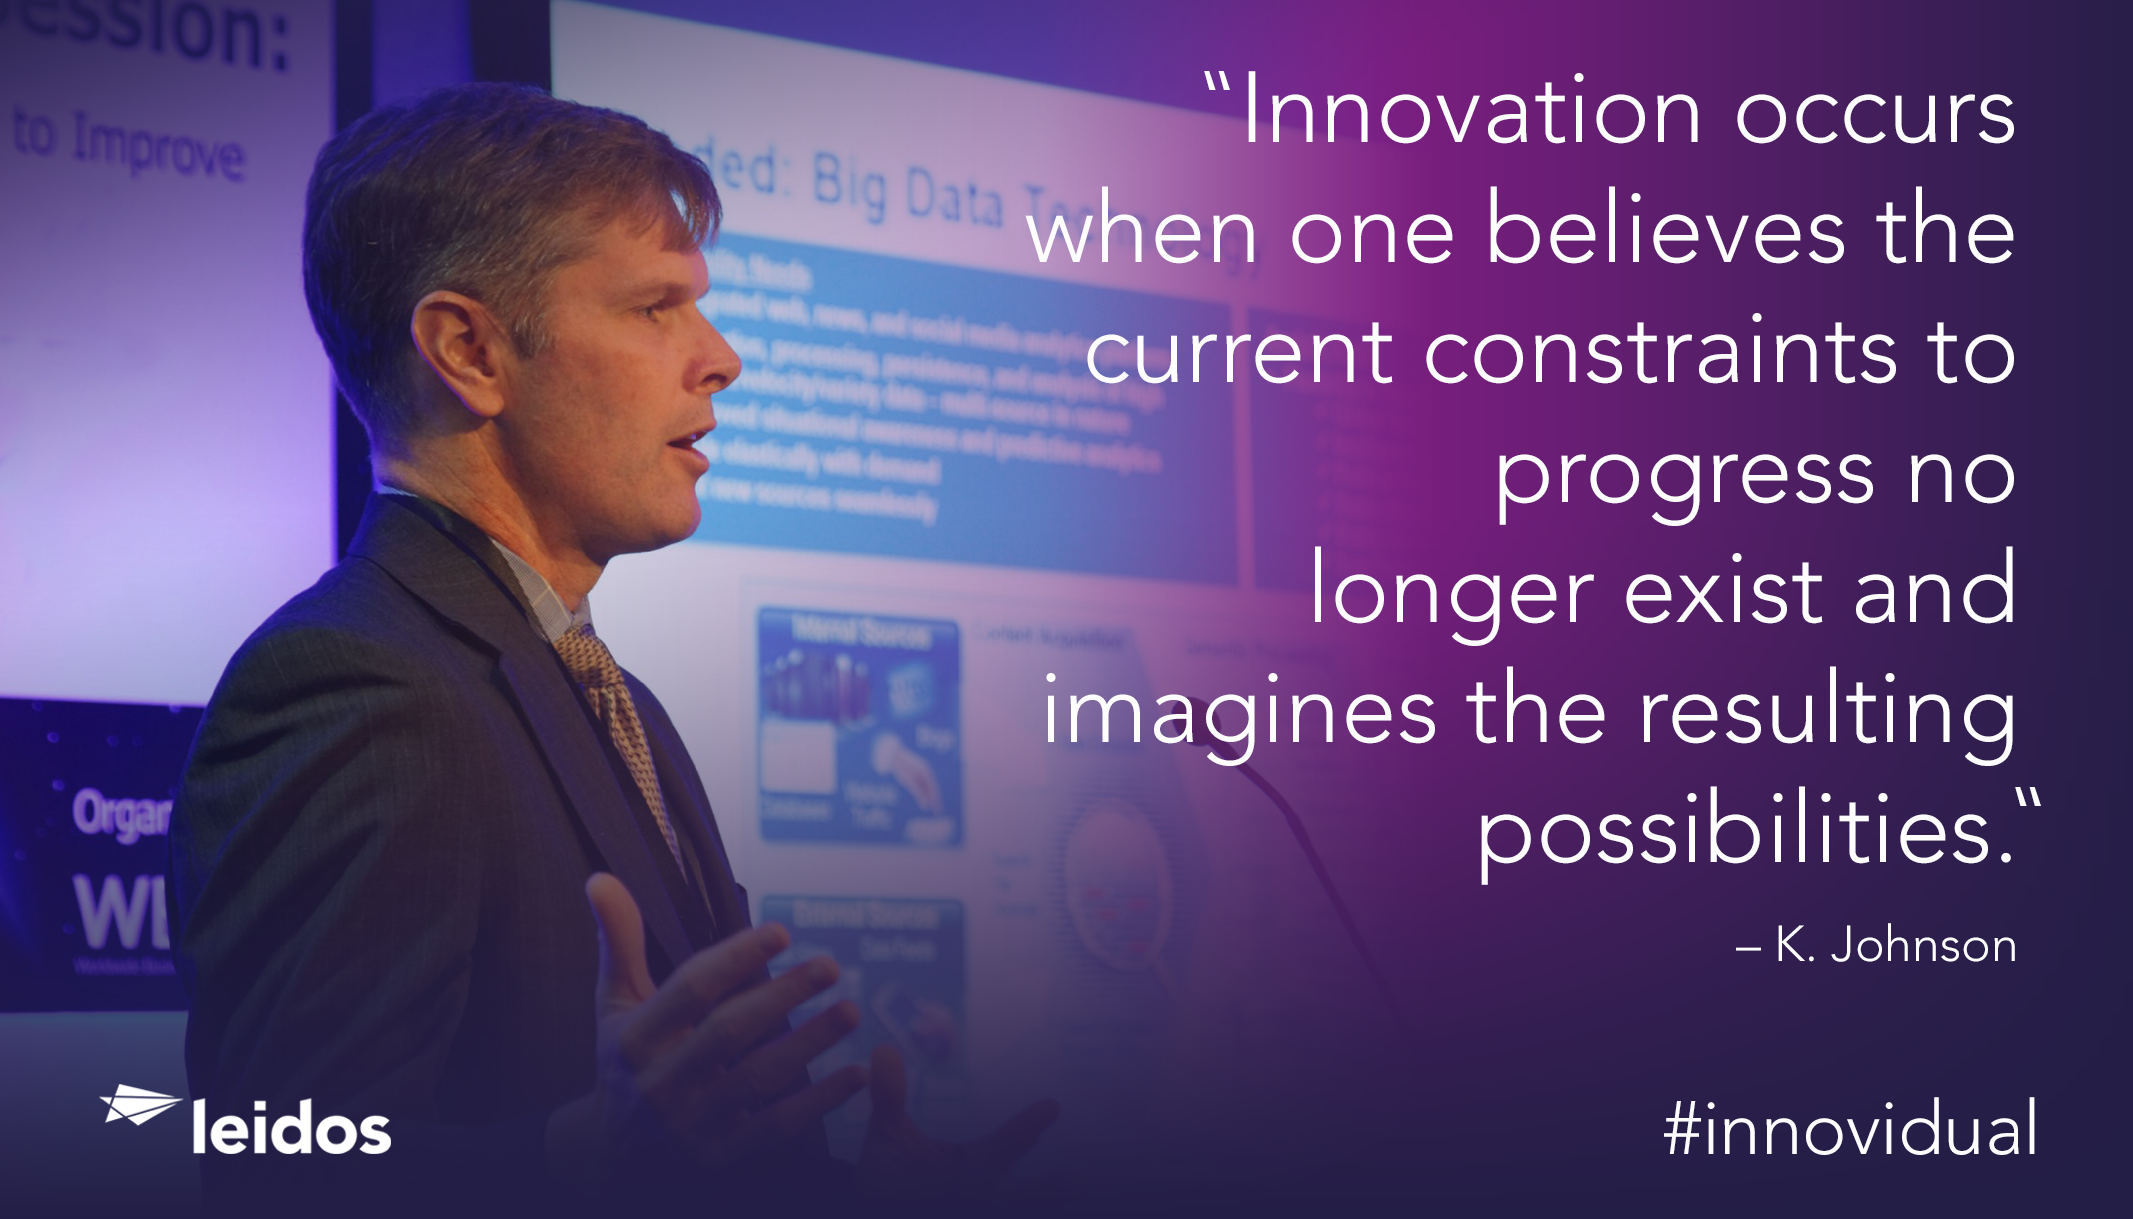 Keith Johnson is CTO and Chief Engineer for Leidos' Defense and Intelligence Group.